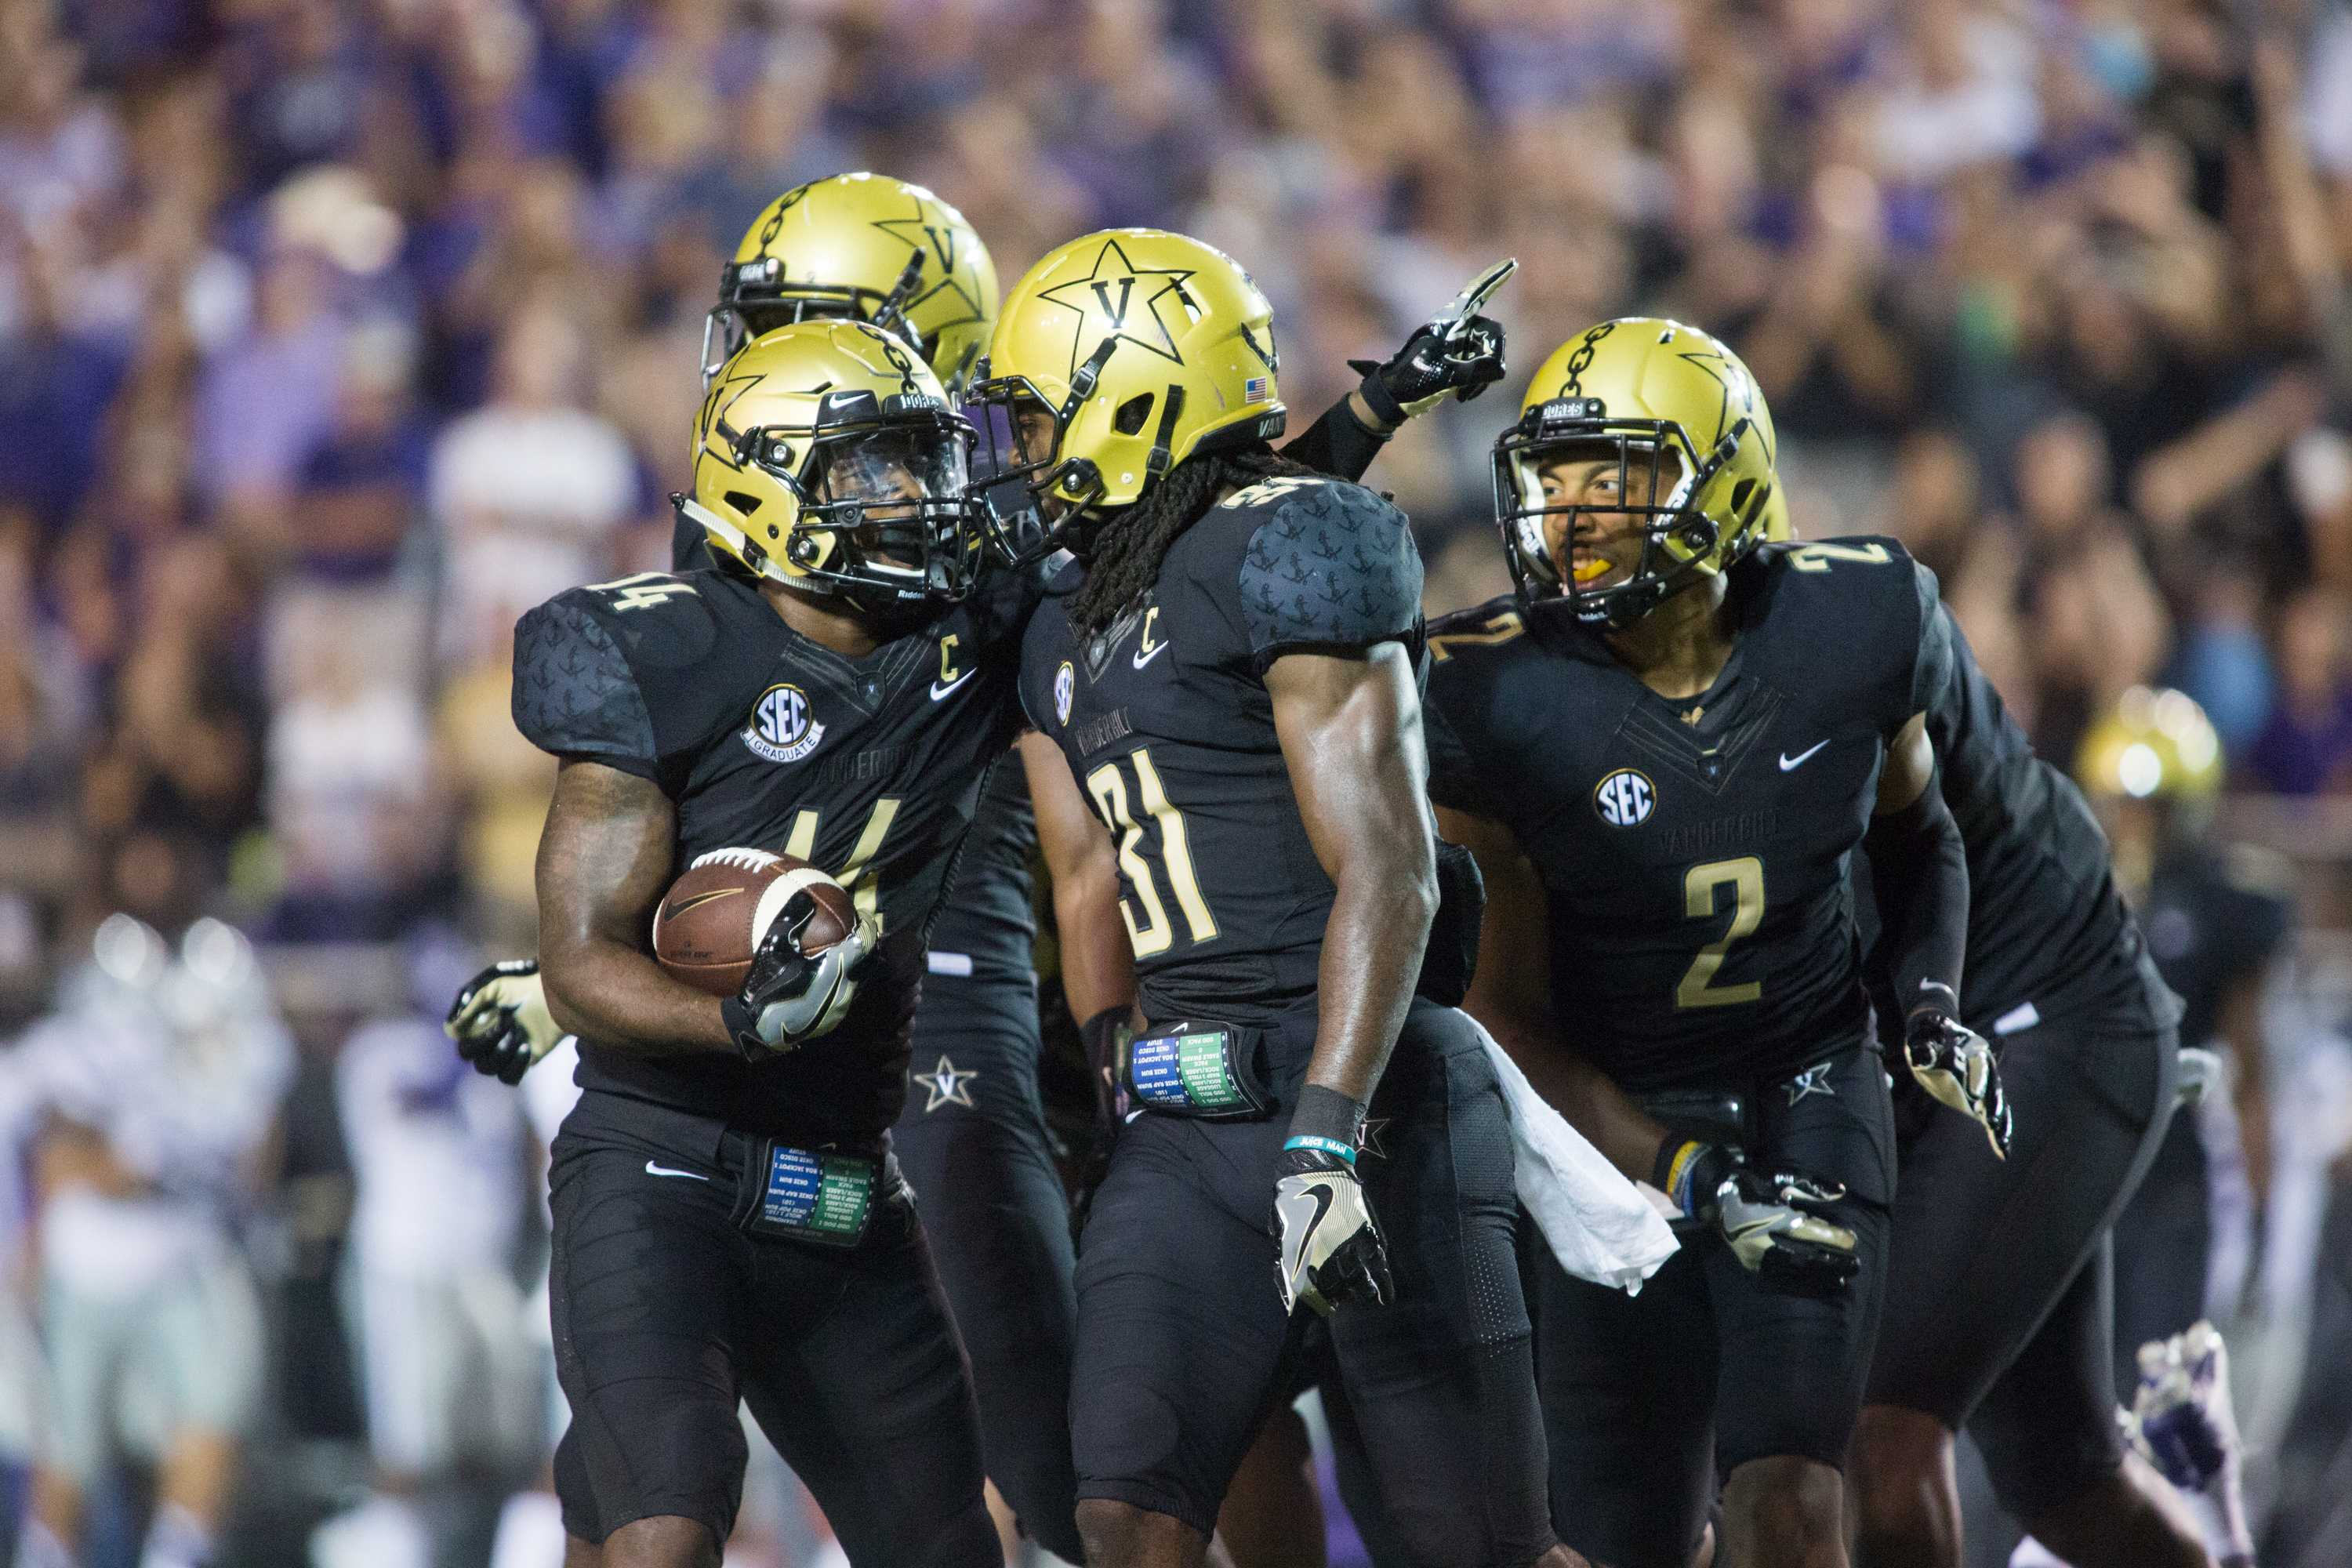 Five storylines before Vanderbilt football kicks off the season